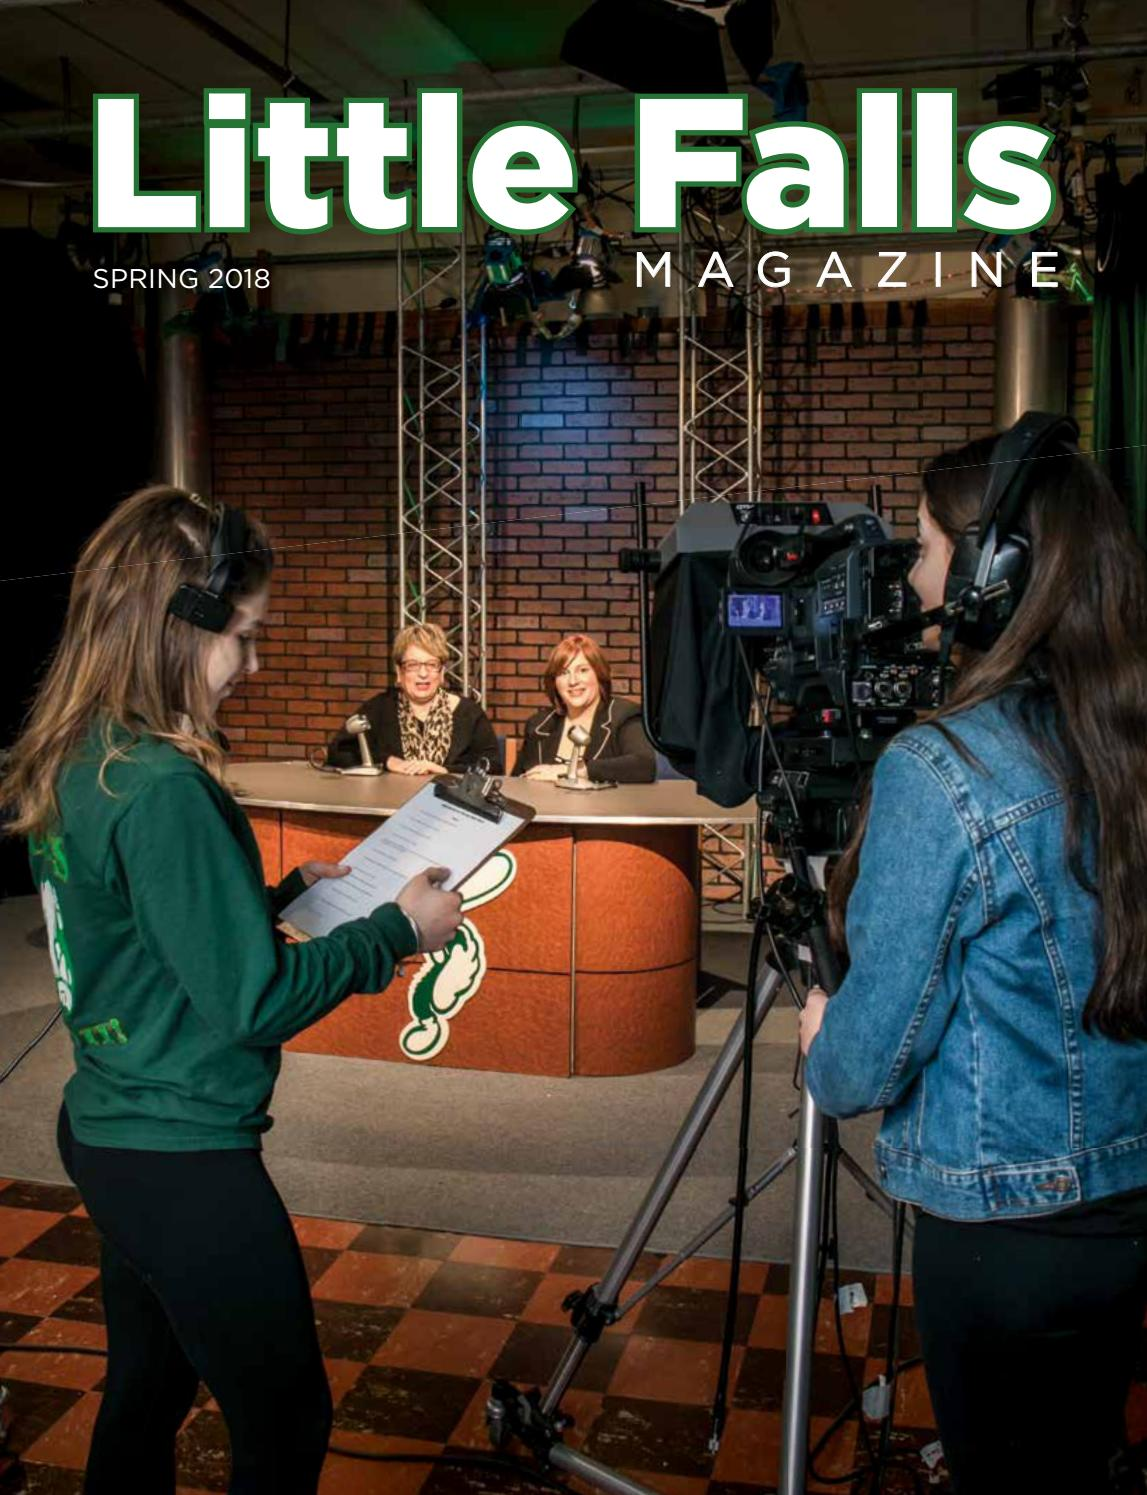 Little Falls Magazine by Vicinity Media Group - issuu